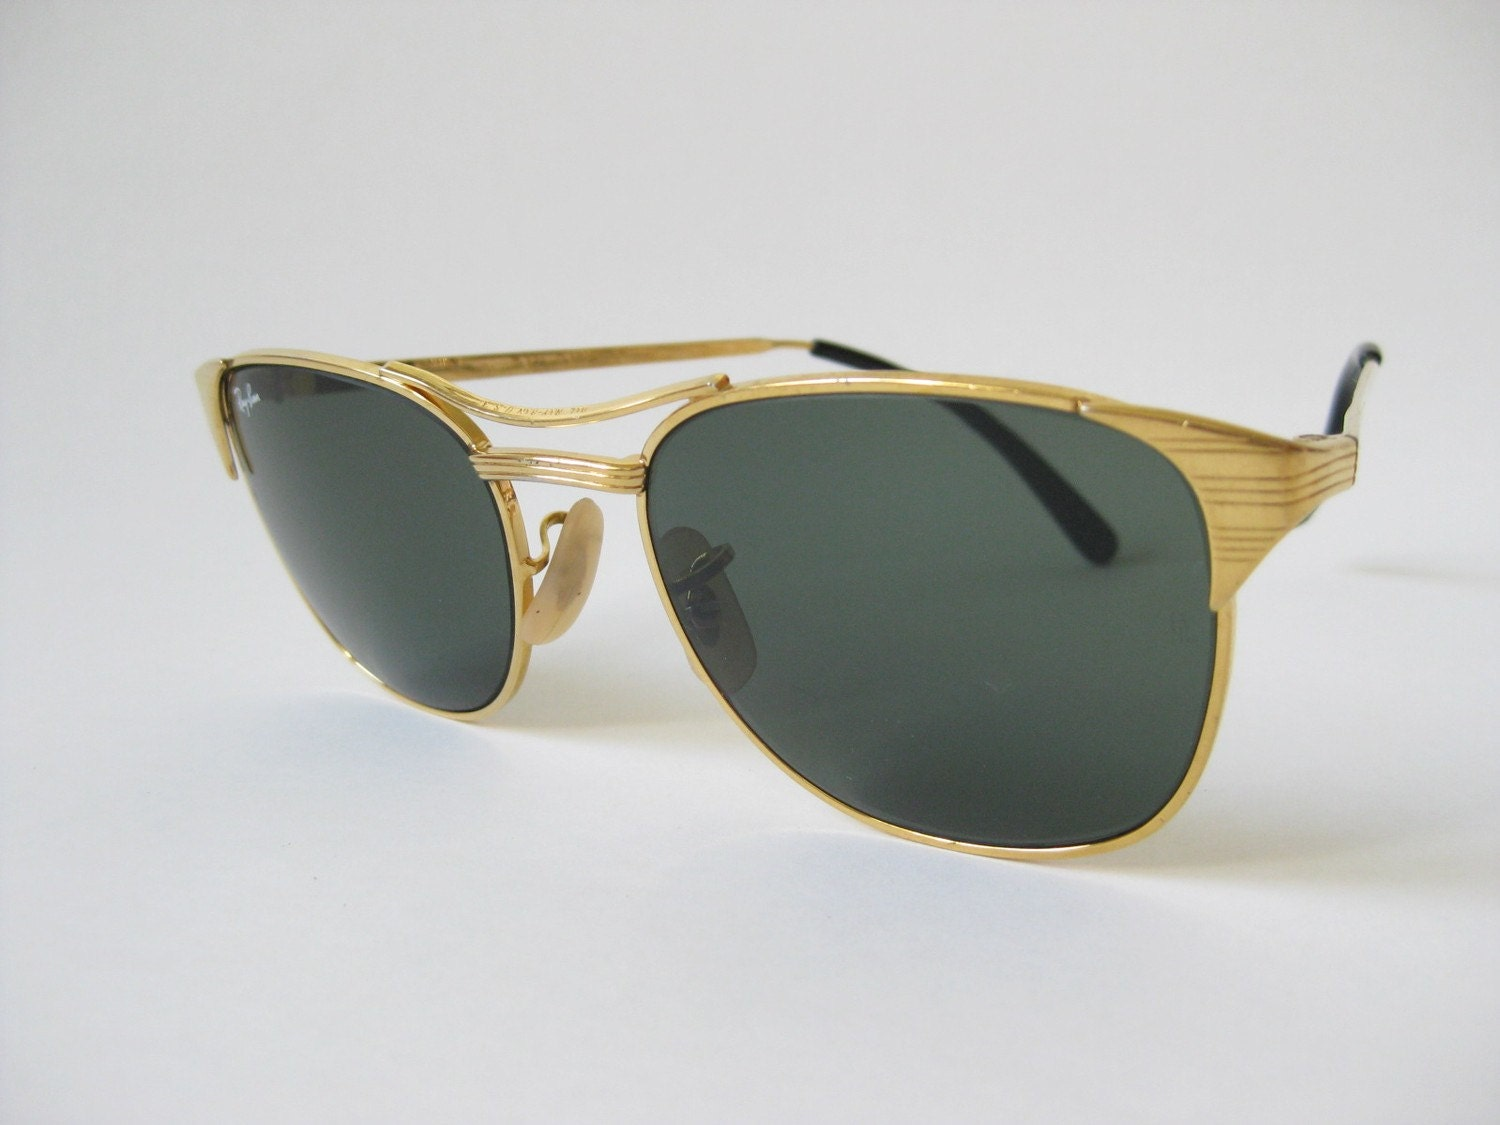 Gold Frame Ray Ban Sunglasses : Vintage RAY BAN Signet Gold Frame SUNGLASSES by ...